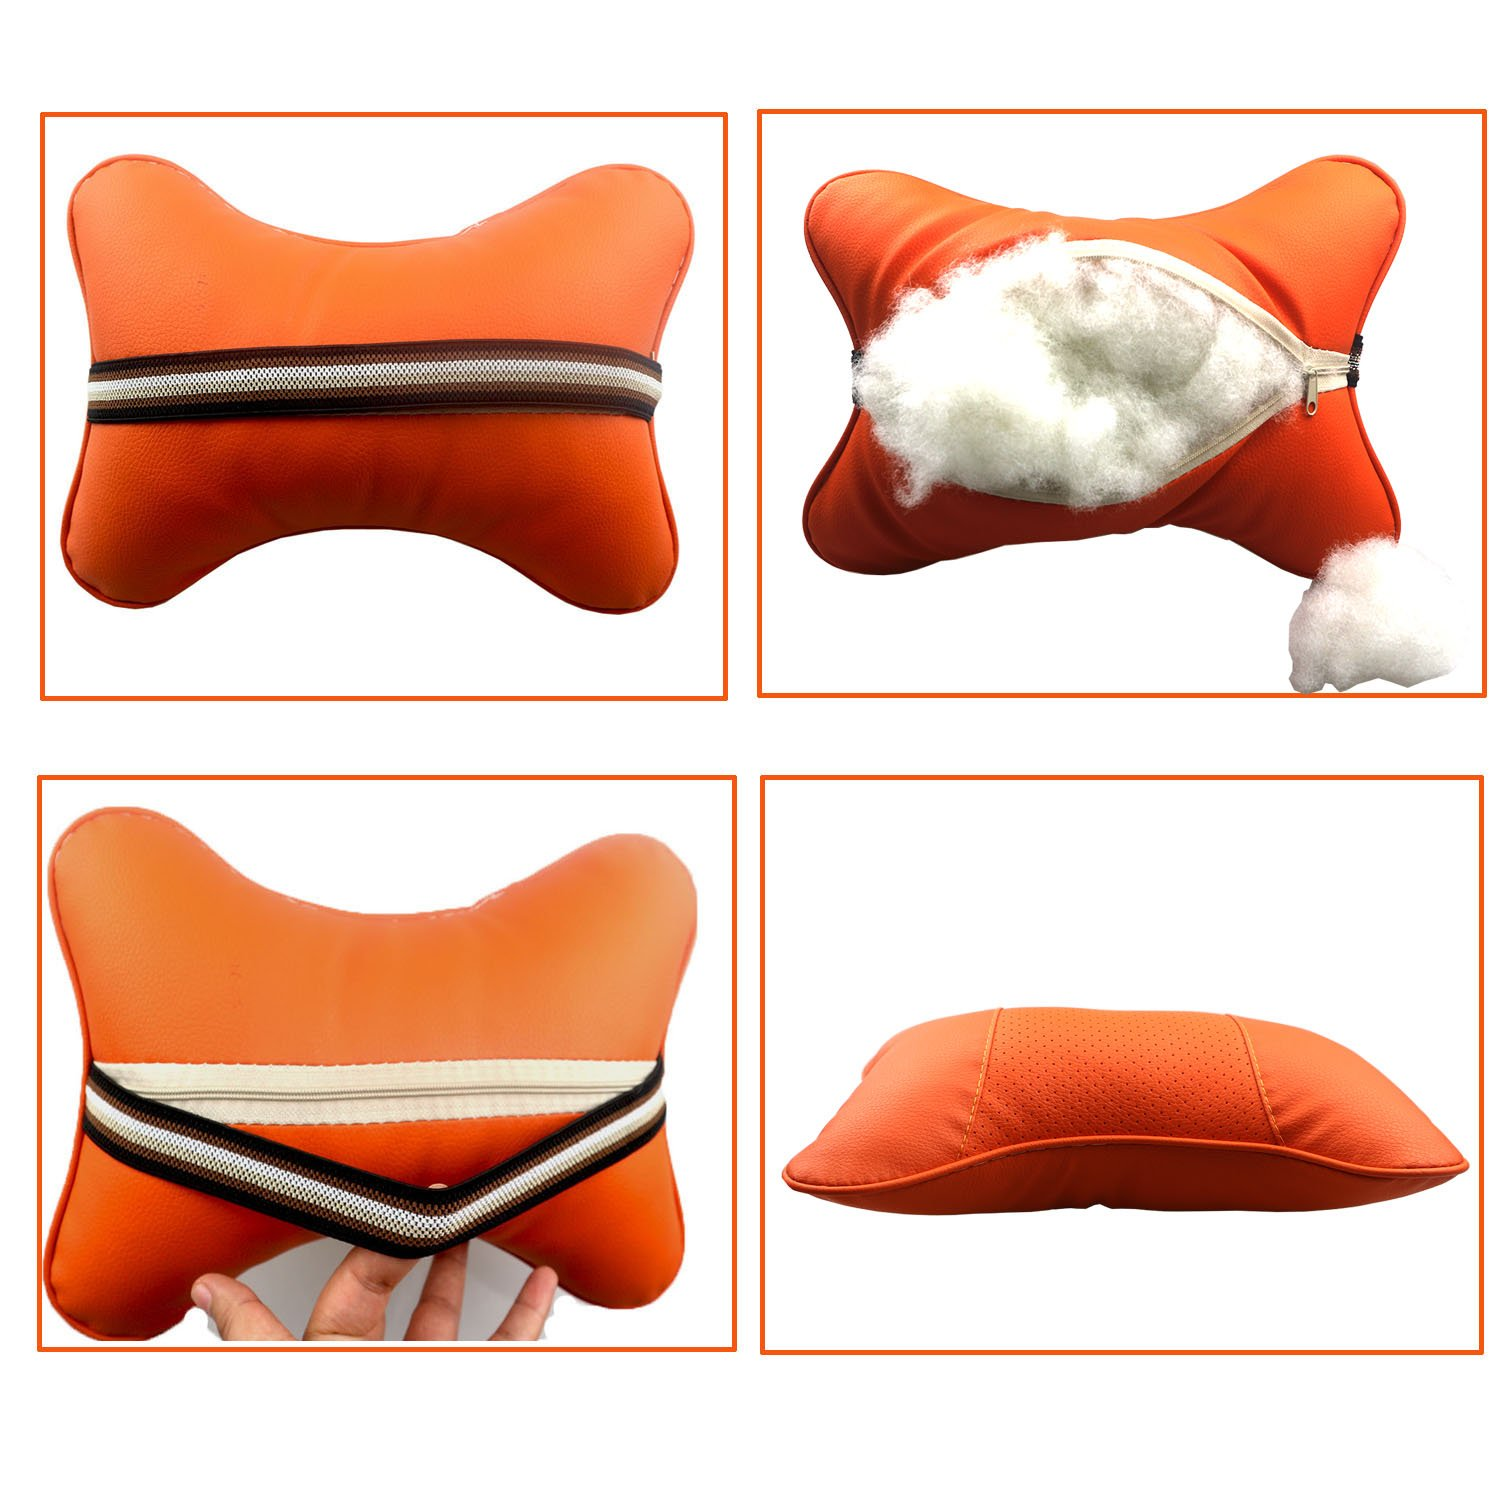 Driving Comfortable and sBreathable Auto Head Rest Cushion Relax Support Headrest Comfortable Soft Pillows Car Protect Neck/&Vertebra in Travel//Office//Home//car Bosoner Car Neck Pillow Bosoner Neck Pillow 2 pcs Black